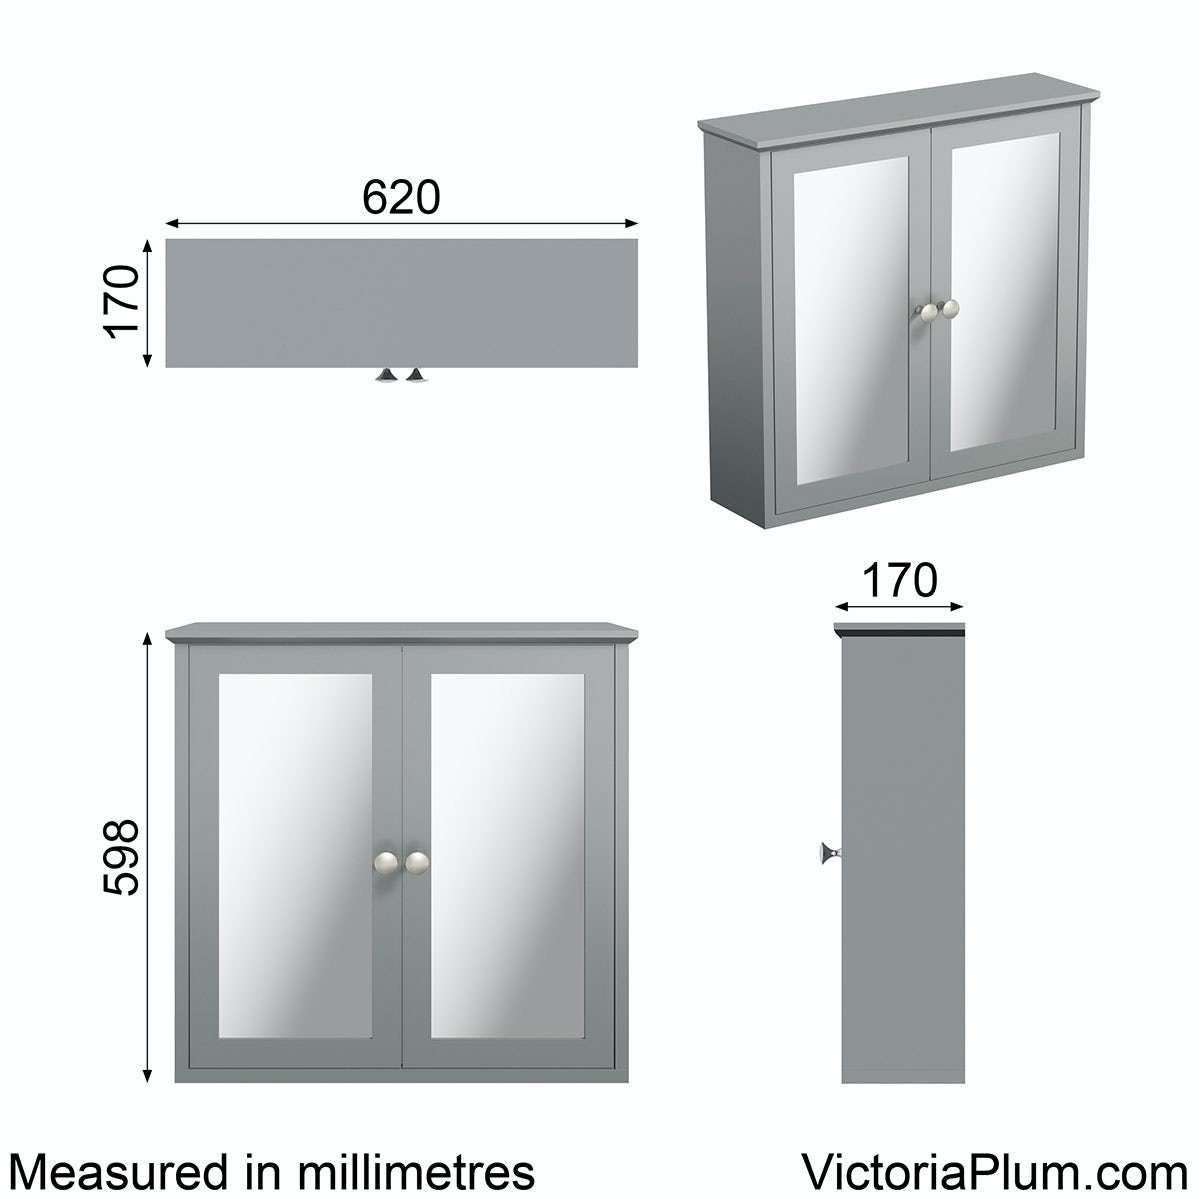 Dimensions for The Bath Co. Camberley grey wall hung mirror cabinet